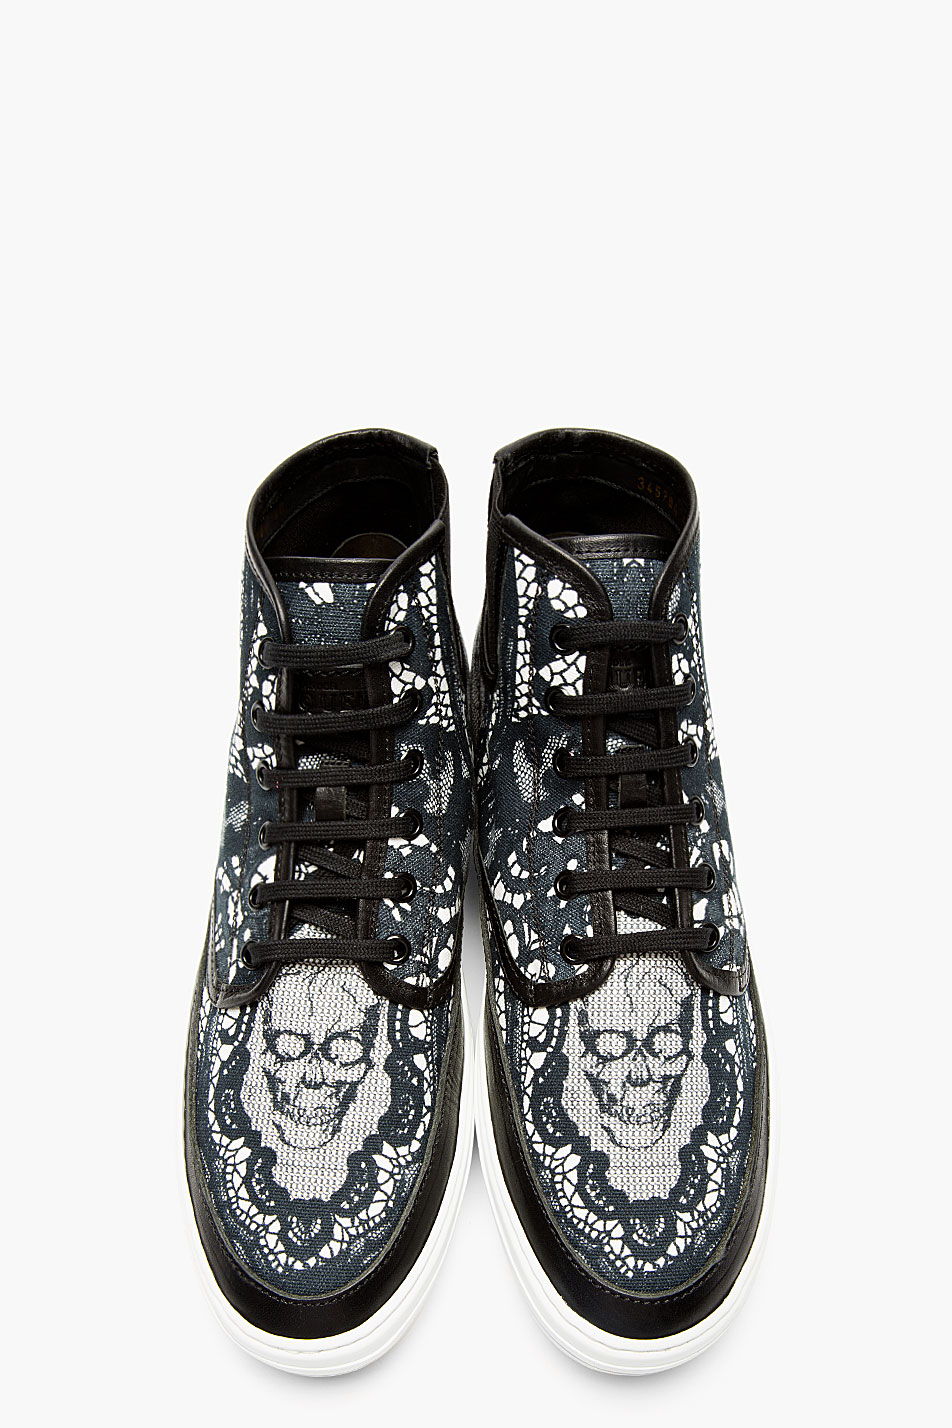 Black Skull × Lace high top sneakers alexander mcqueen 1